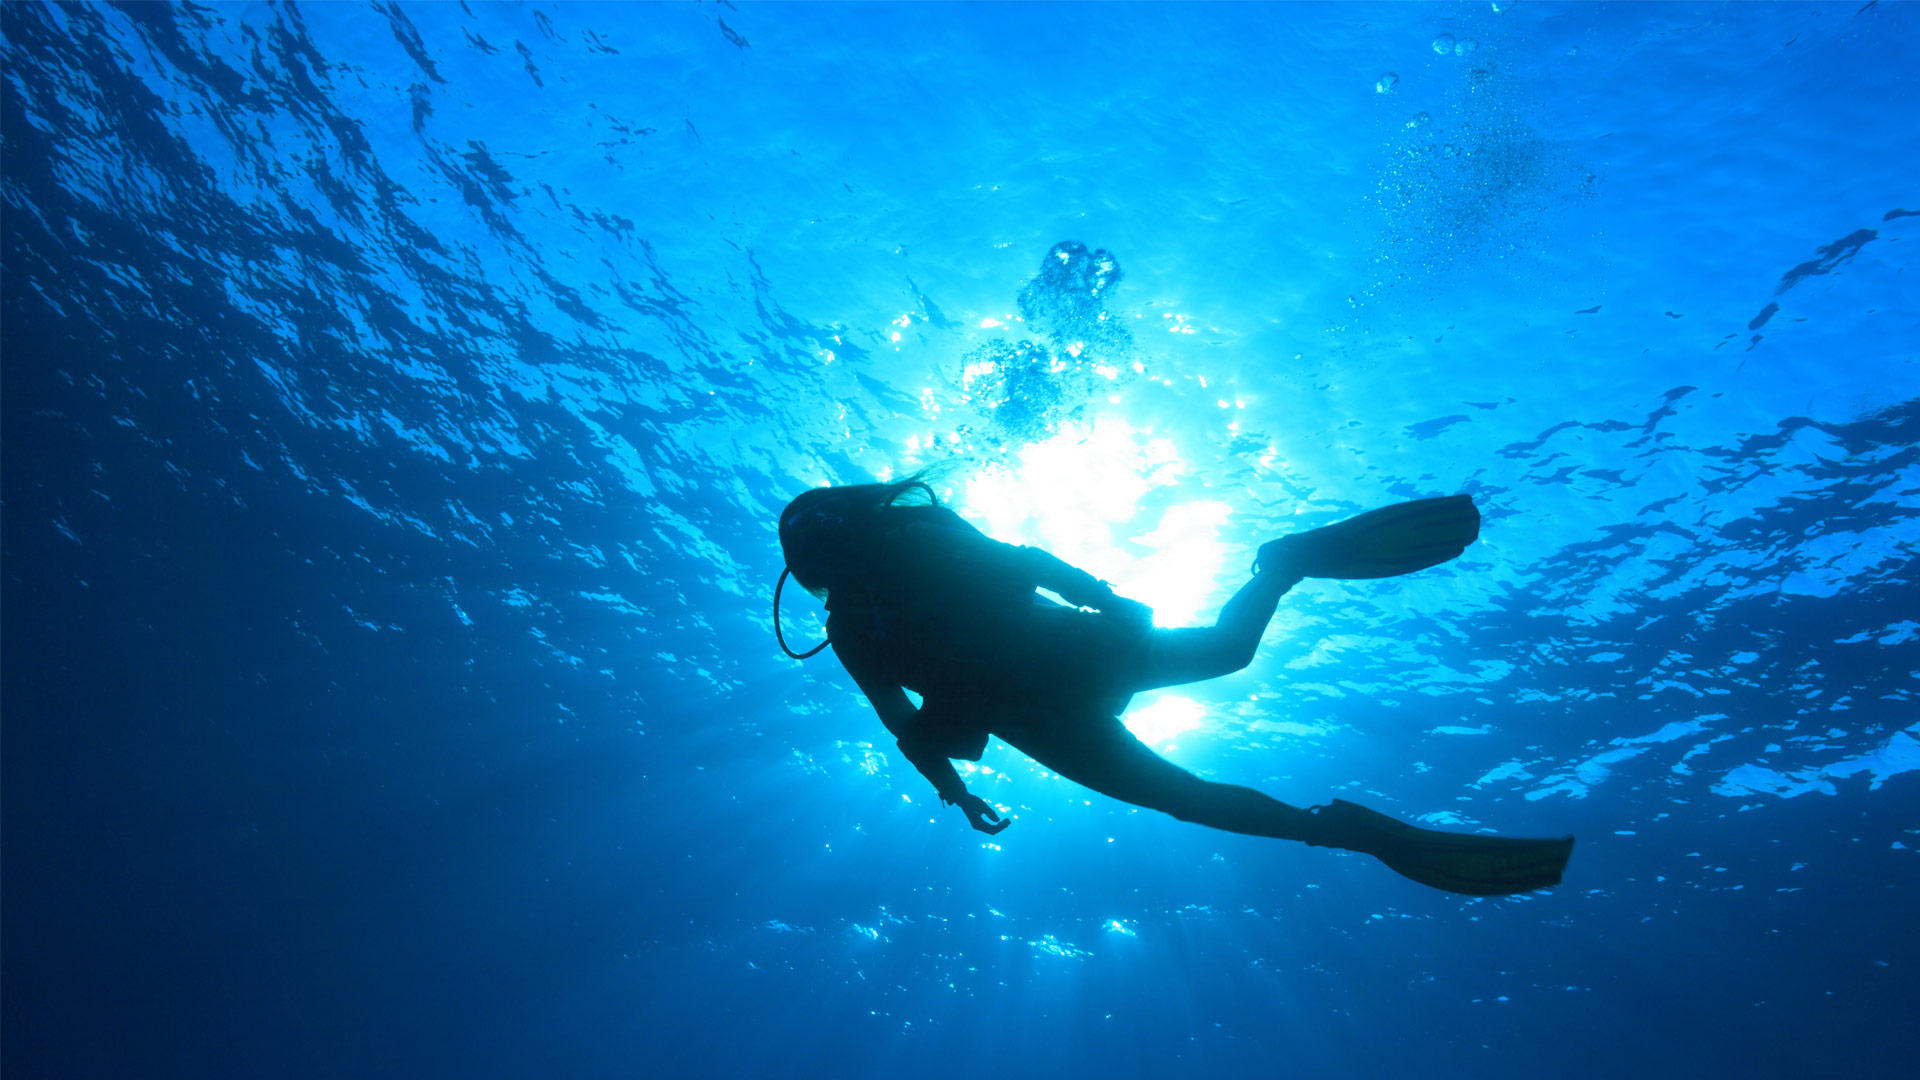 The PADI Certified Scuba Diving Center Teaches And Awards Diplomas Up To The Highest Levels Of